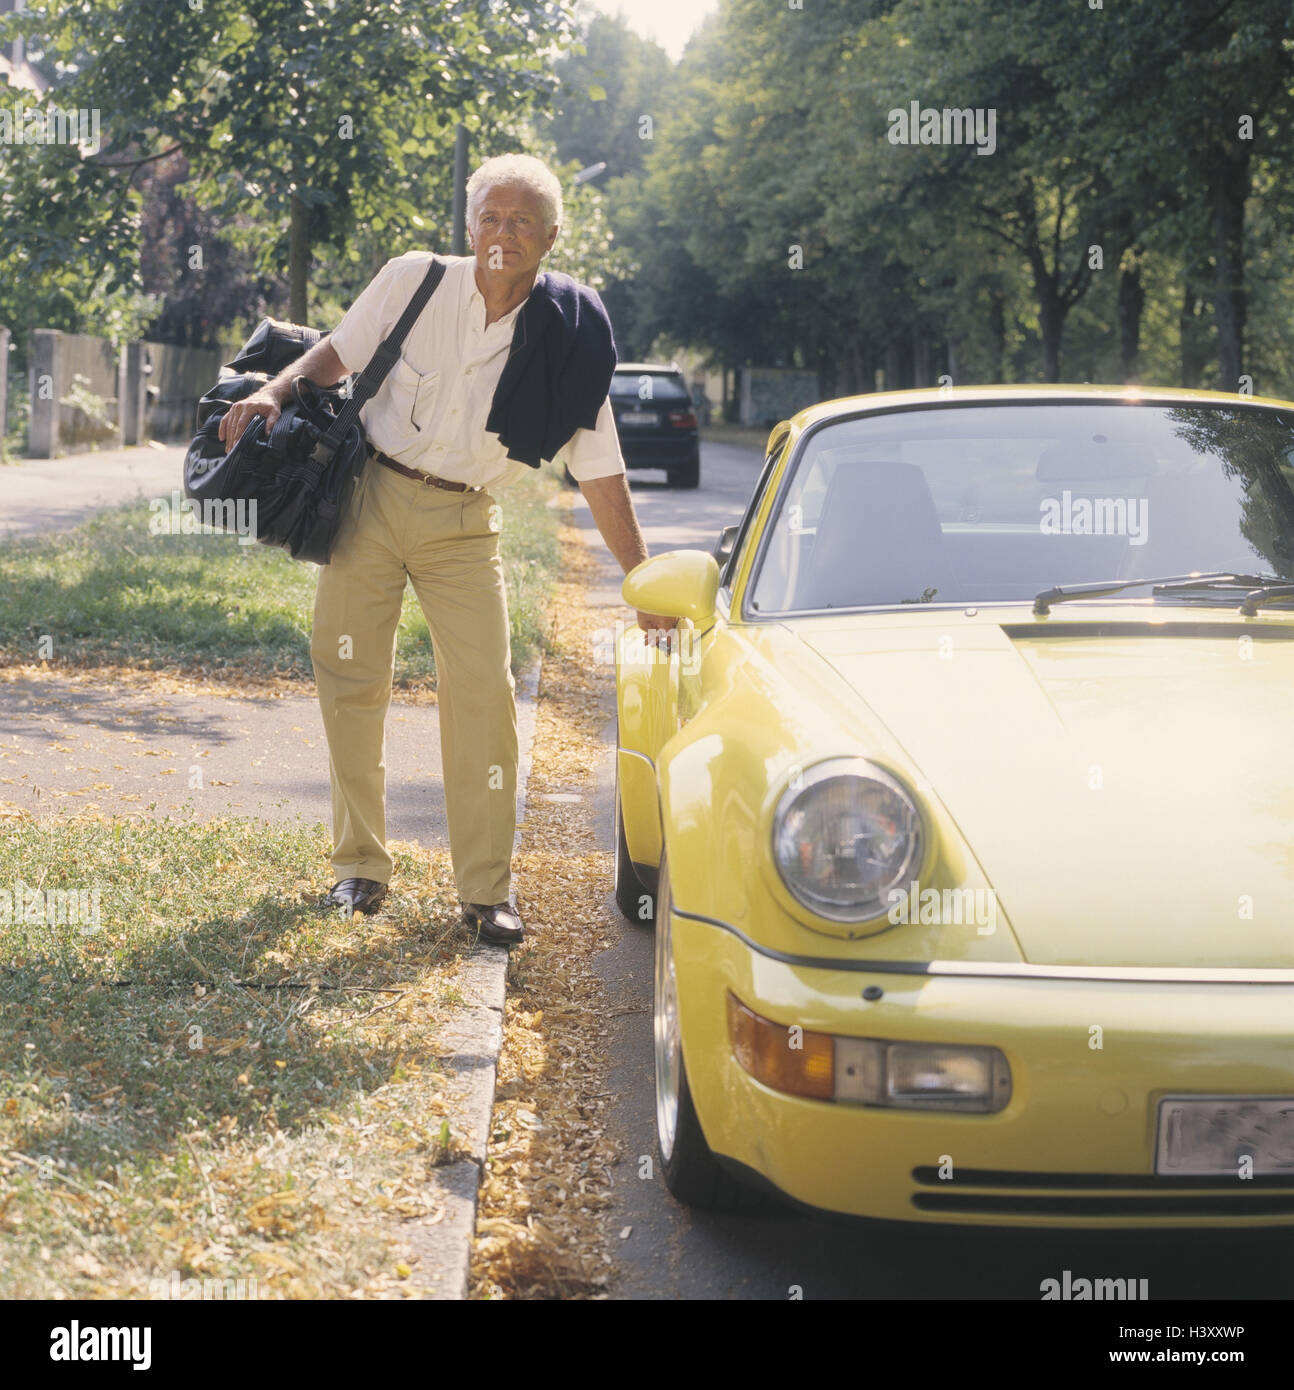 Delightful Man, Middle Old Person, Porsche, Unlock, Travel Pouch, 40 50 Years,  Grey Haired, Businessman, Well To Do, Wealth, Luxury, Luxury Car, Passenger  Car, ...